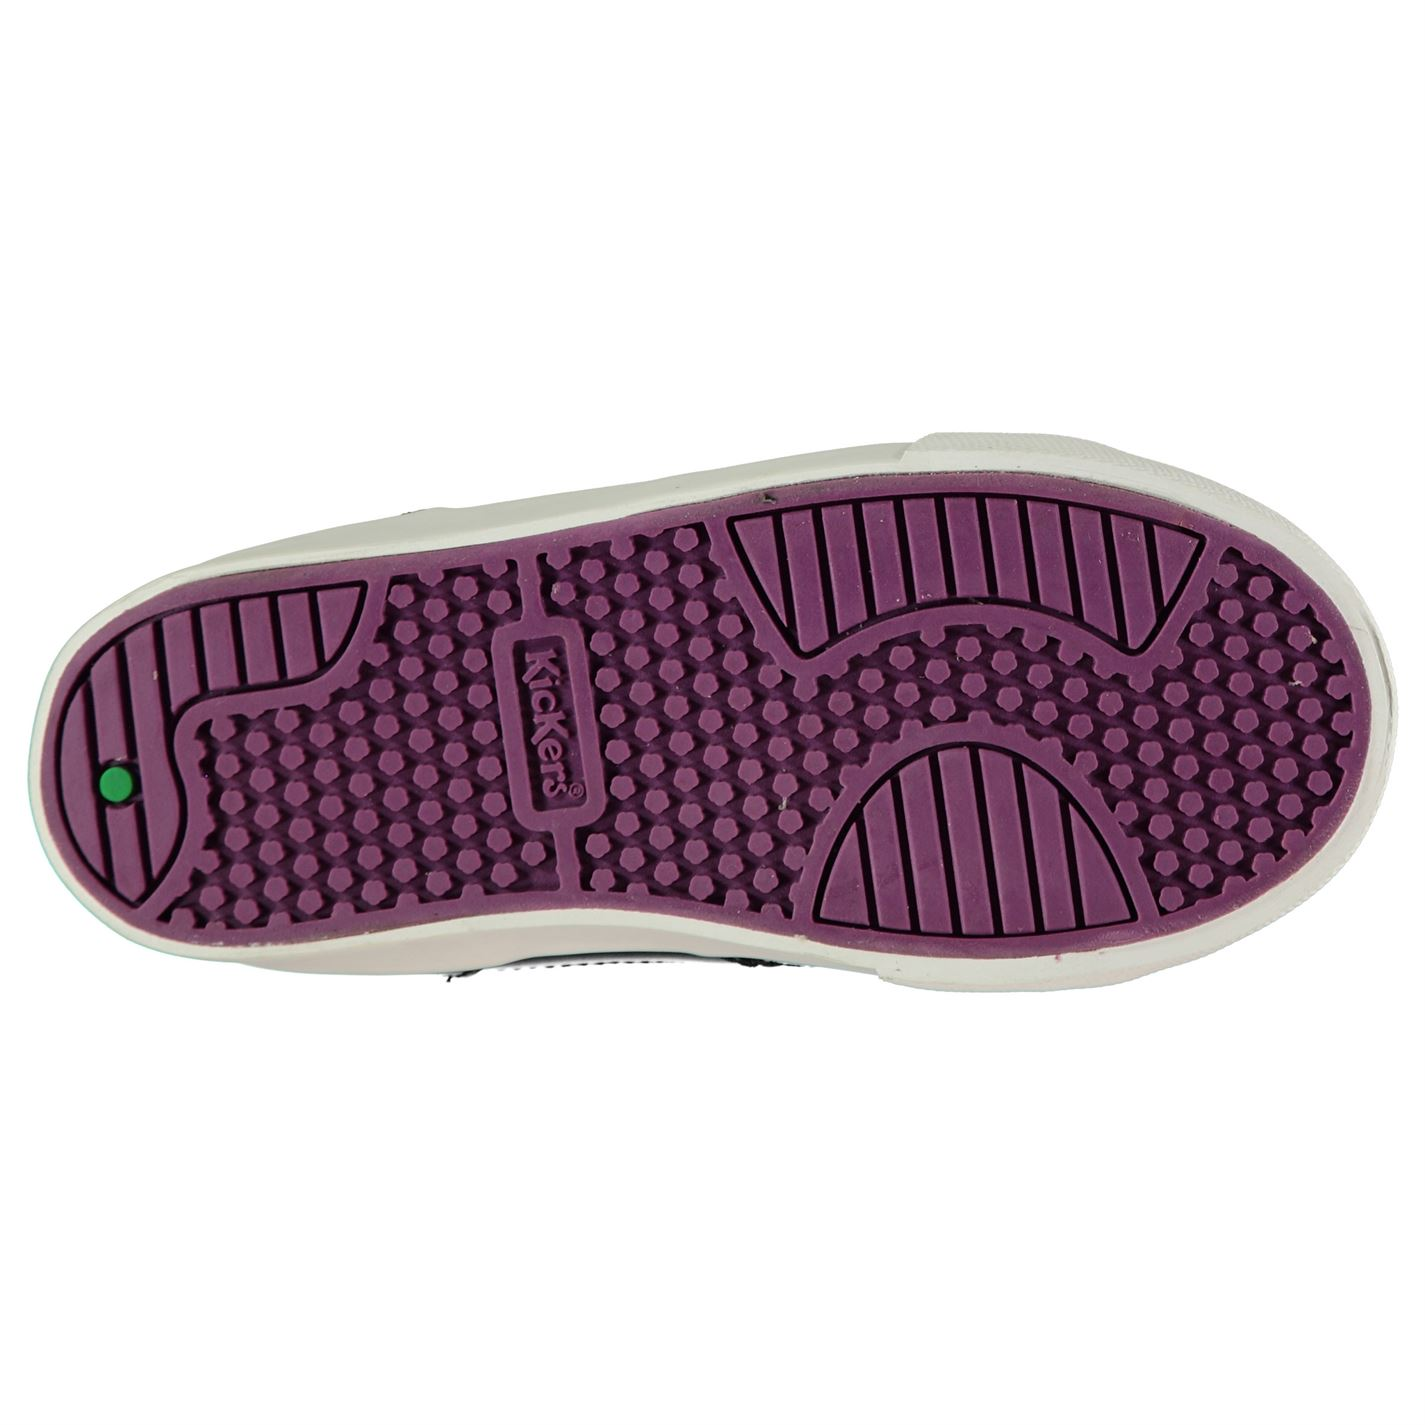 KICKERS Chella Chaussures Filles Everyday Enfiler Bow